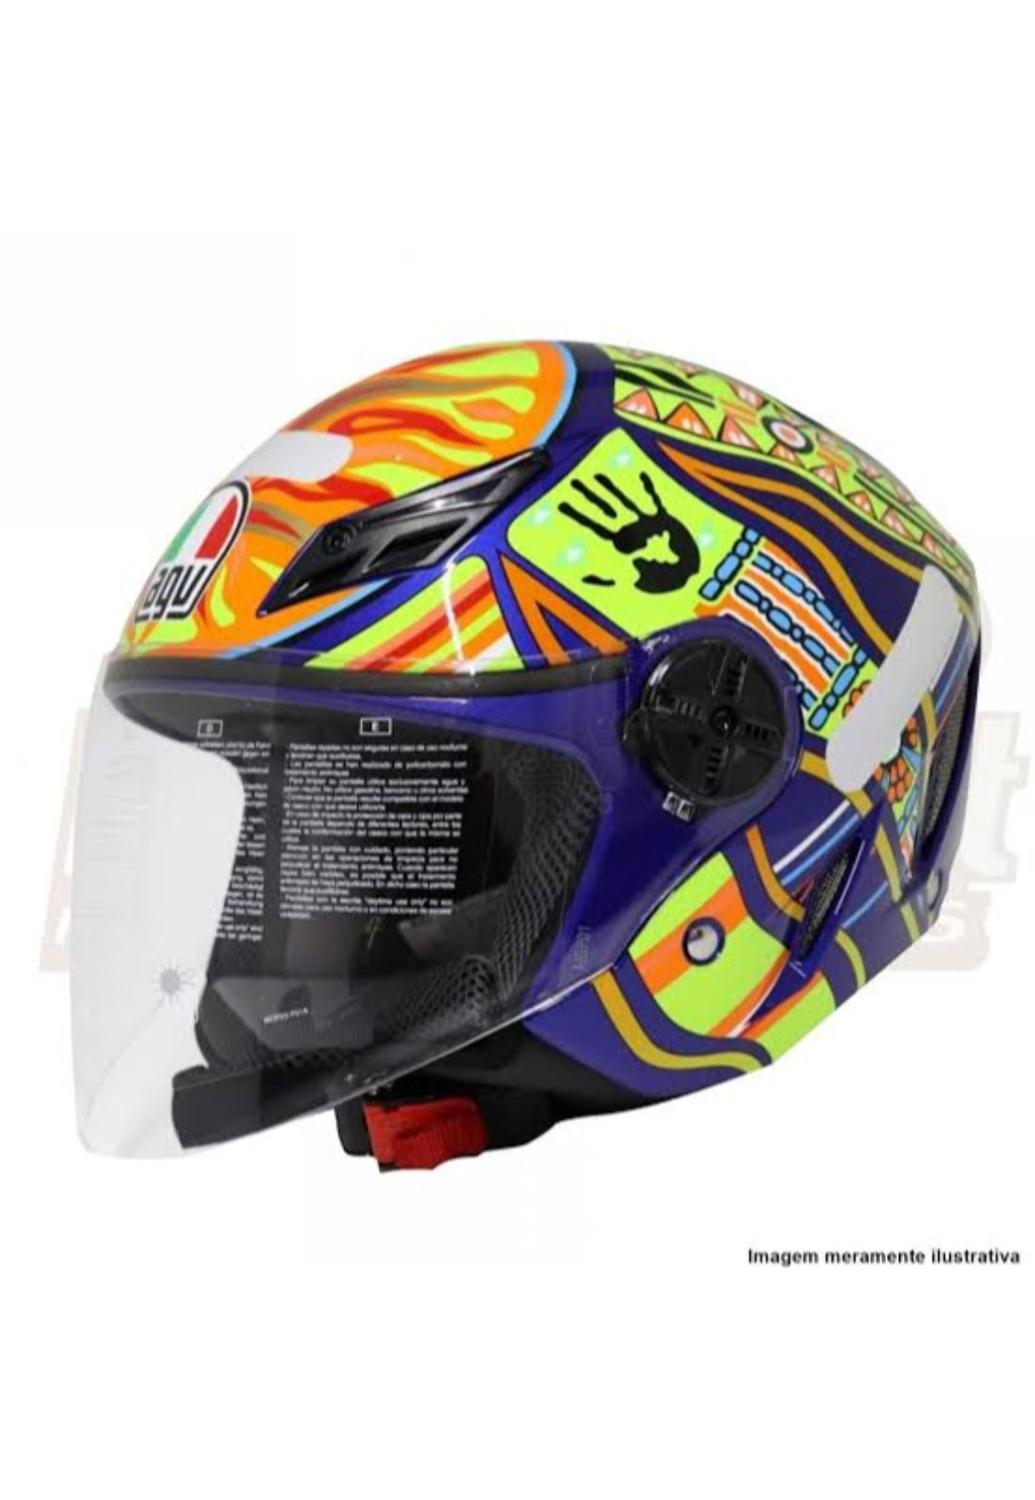 Capacete Agv Blade Five Continents No Magalu Magazine Luiza